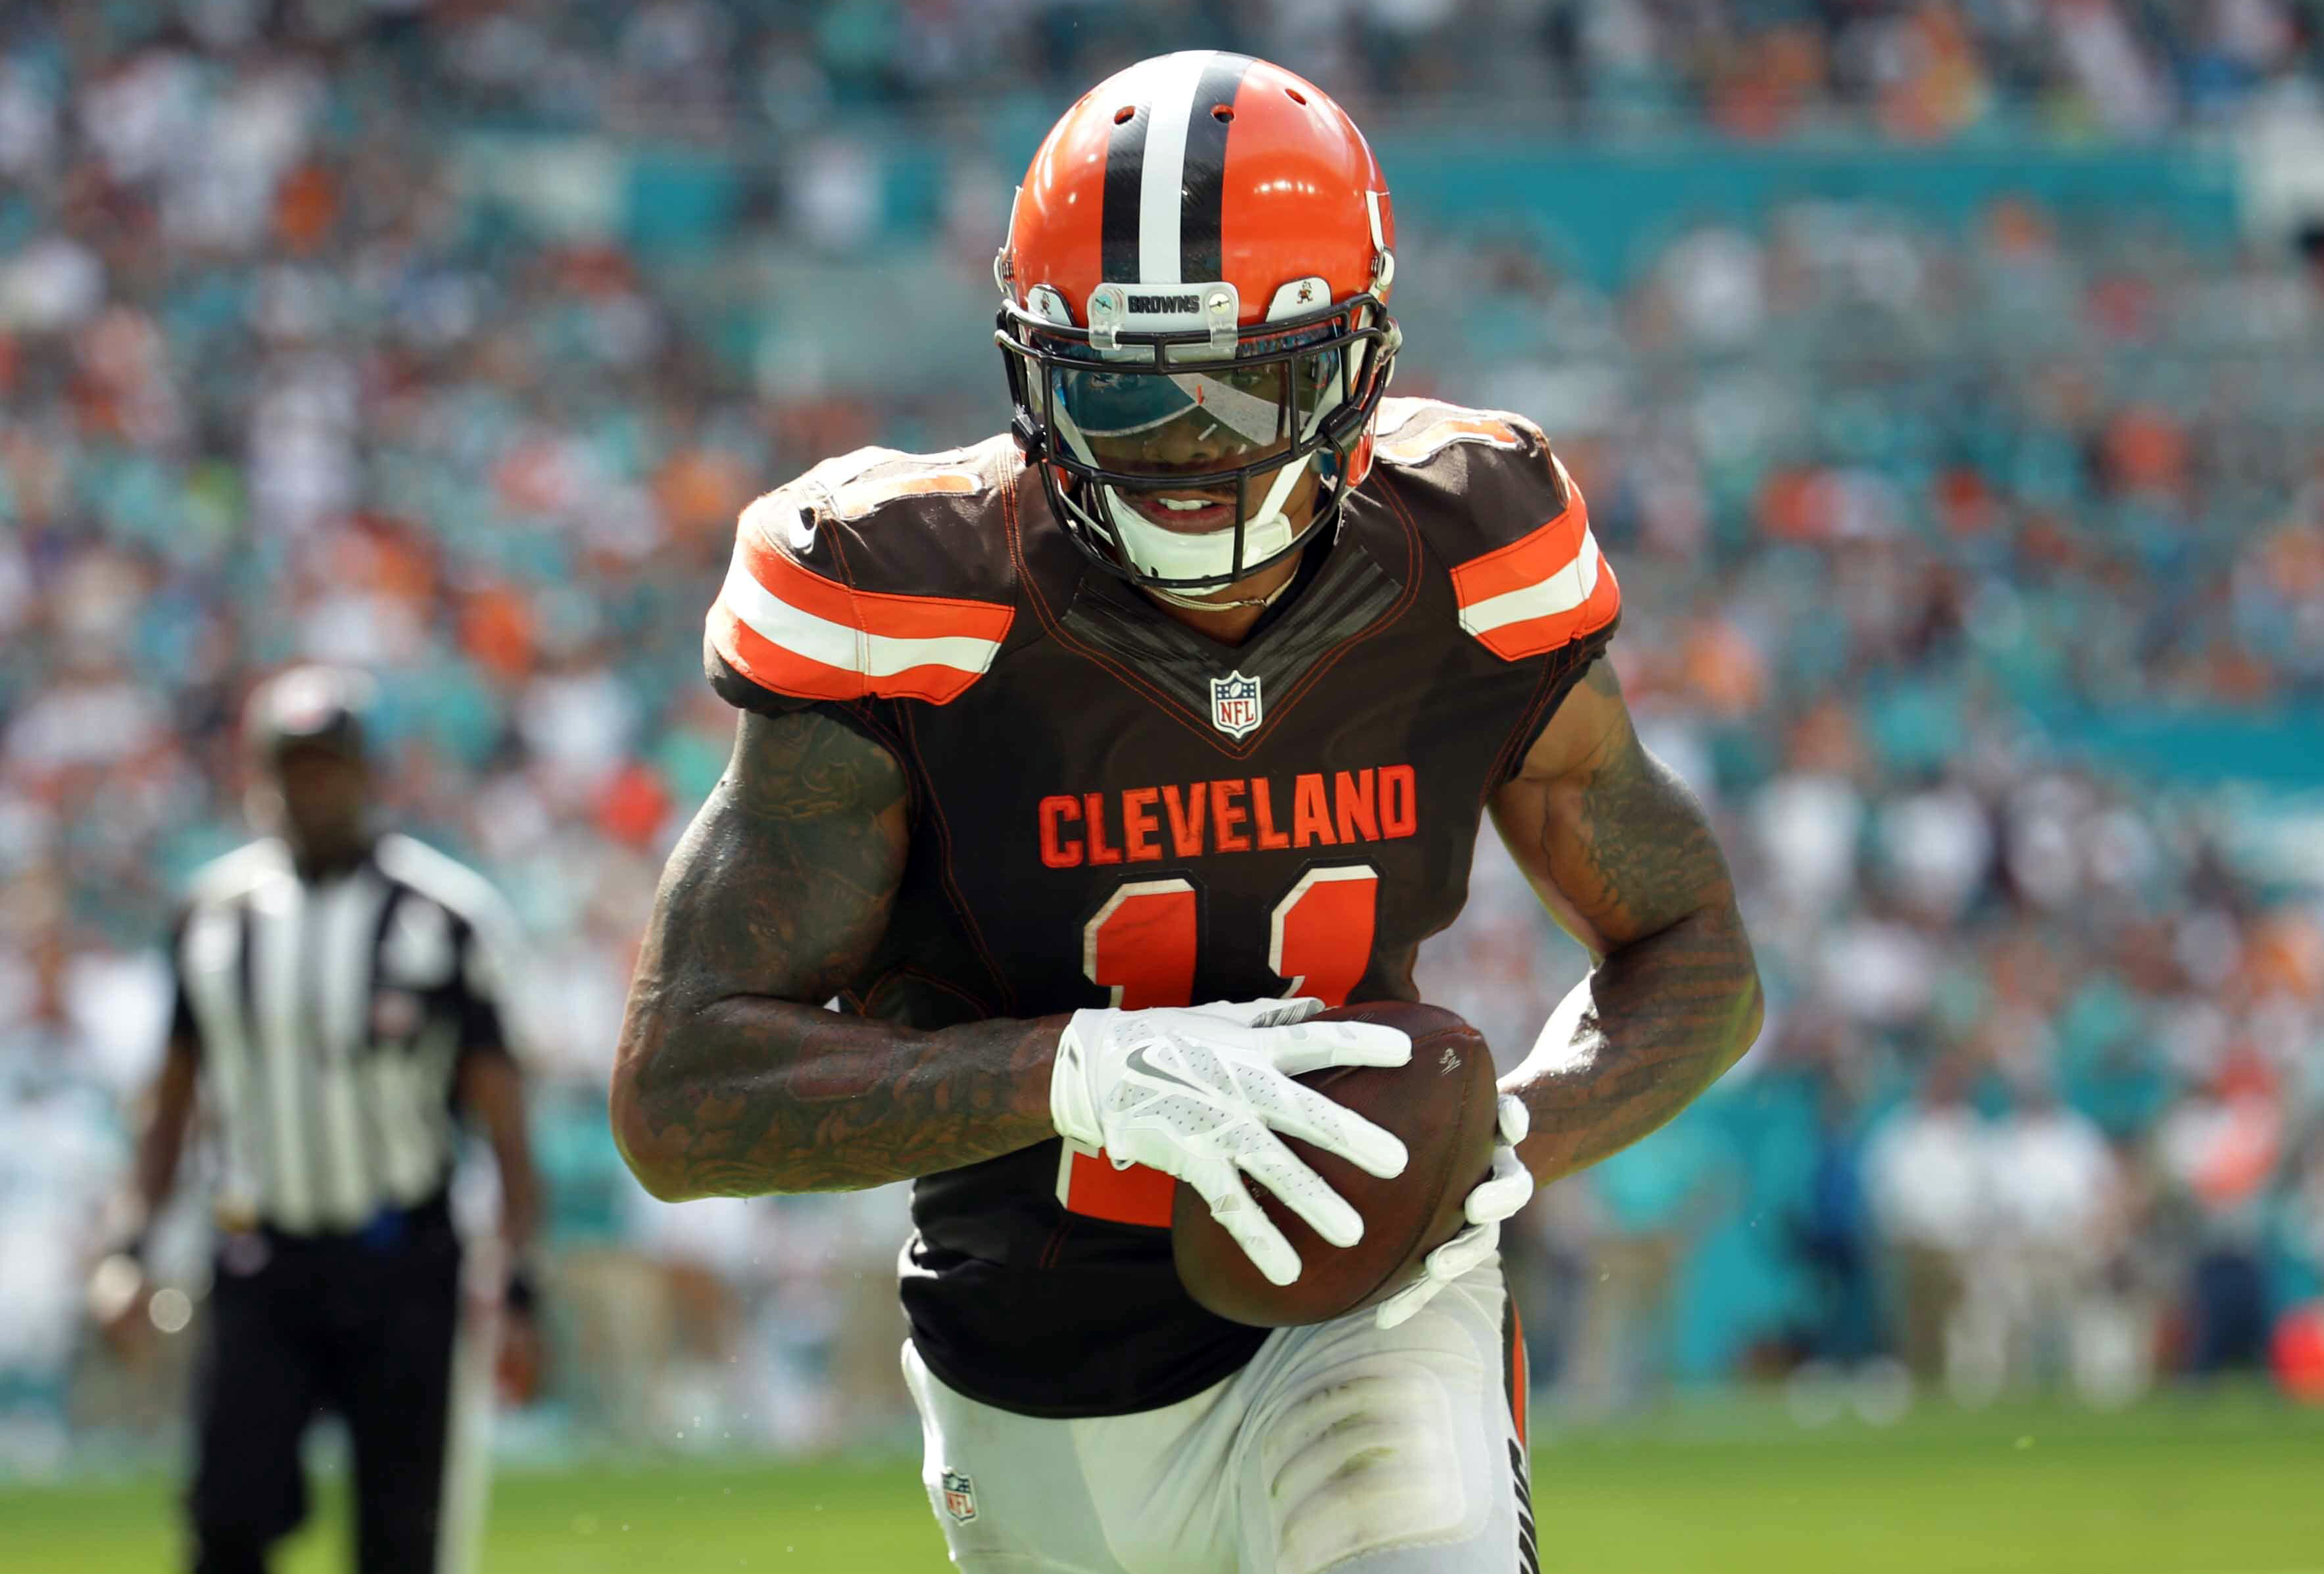 FILE - In this Sept. 25, 2016, file photo, Cleveland Browns wide receiver Terrelle Pryor (11) eyes the goal  line as he heads in for a touchdown during the second half of an NFL football game against the Miami Dolphins in Miami Gardens, Fla. Fantasy footb